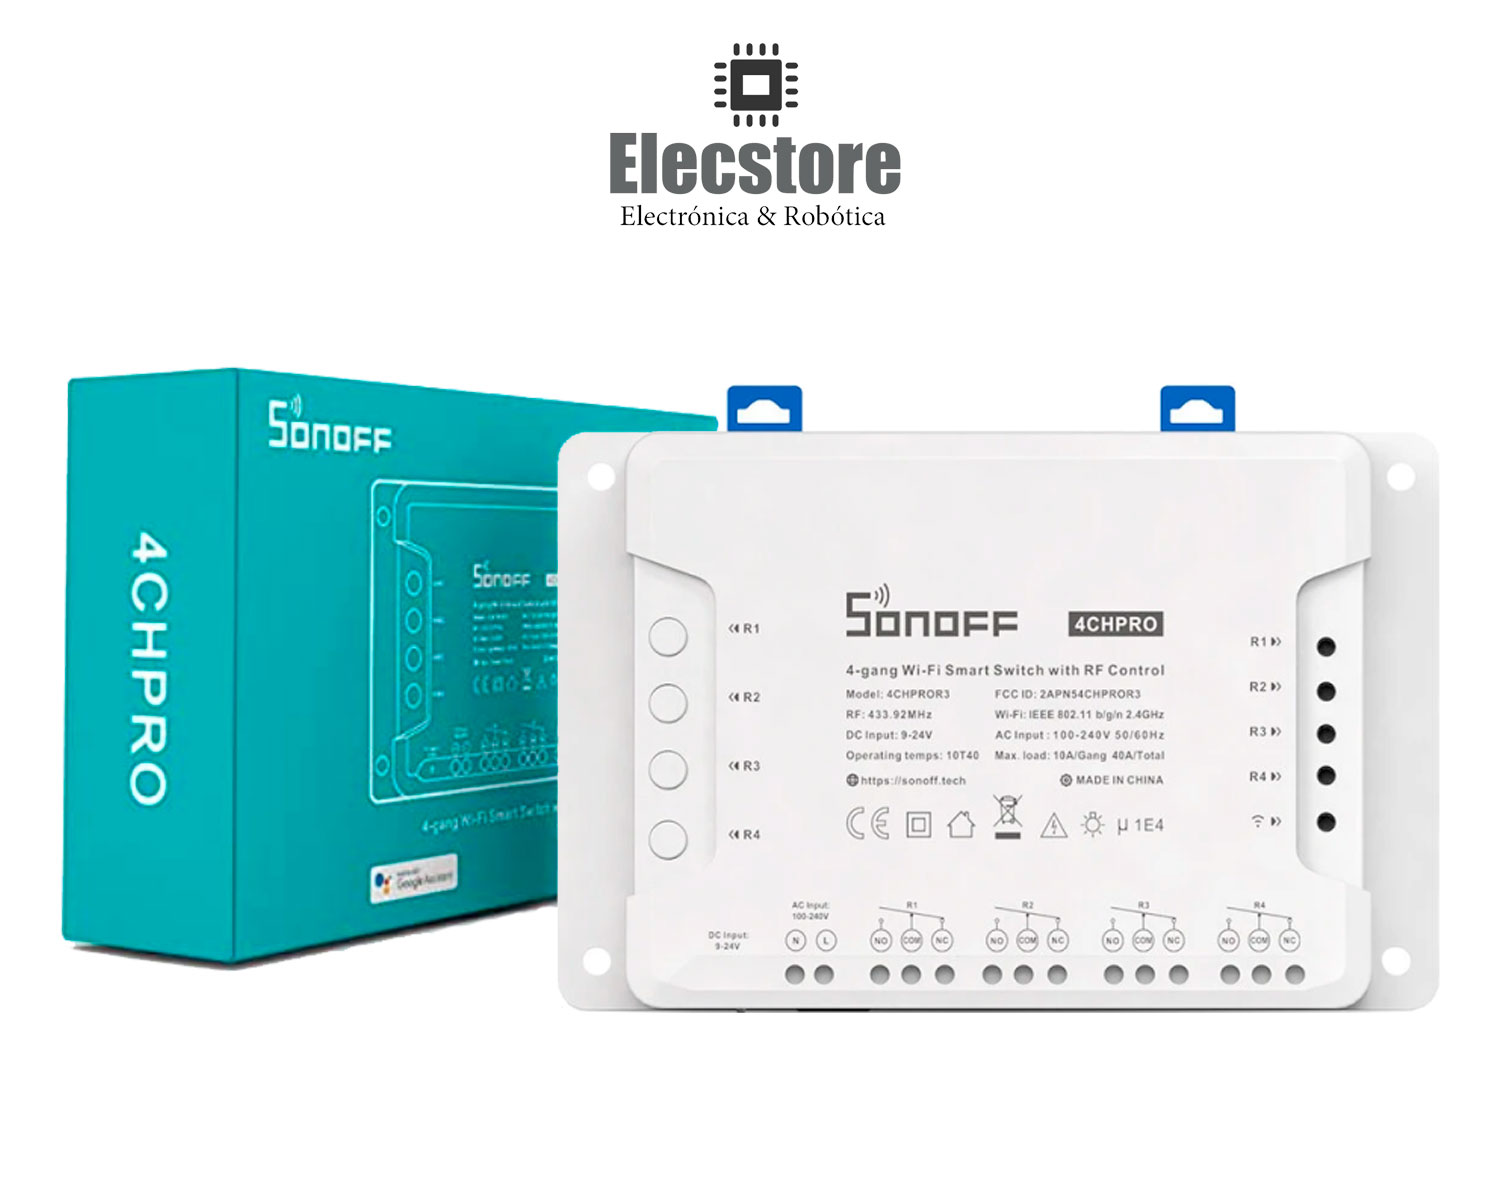 SONOFF 4CH R3 PRO GANG SMART SWITCH